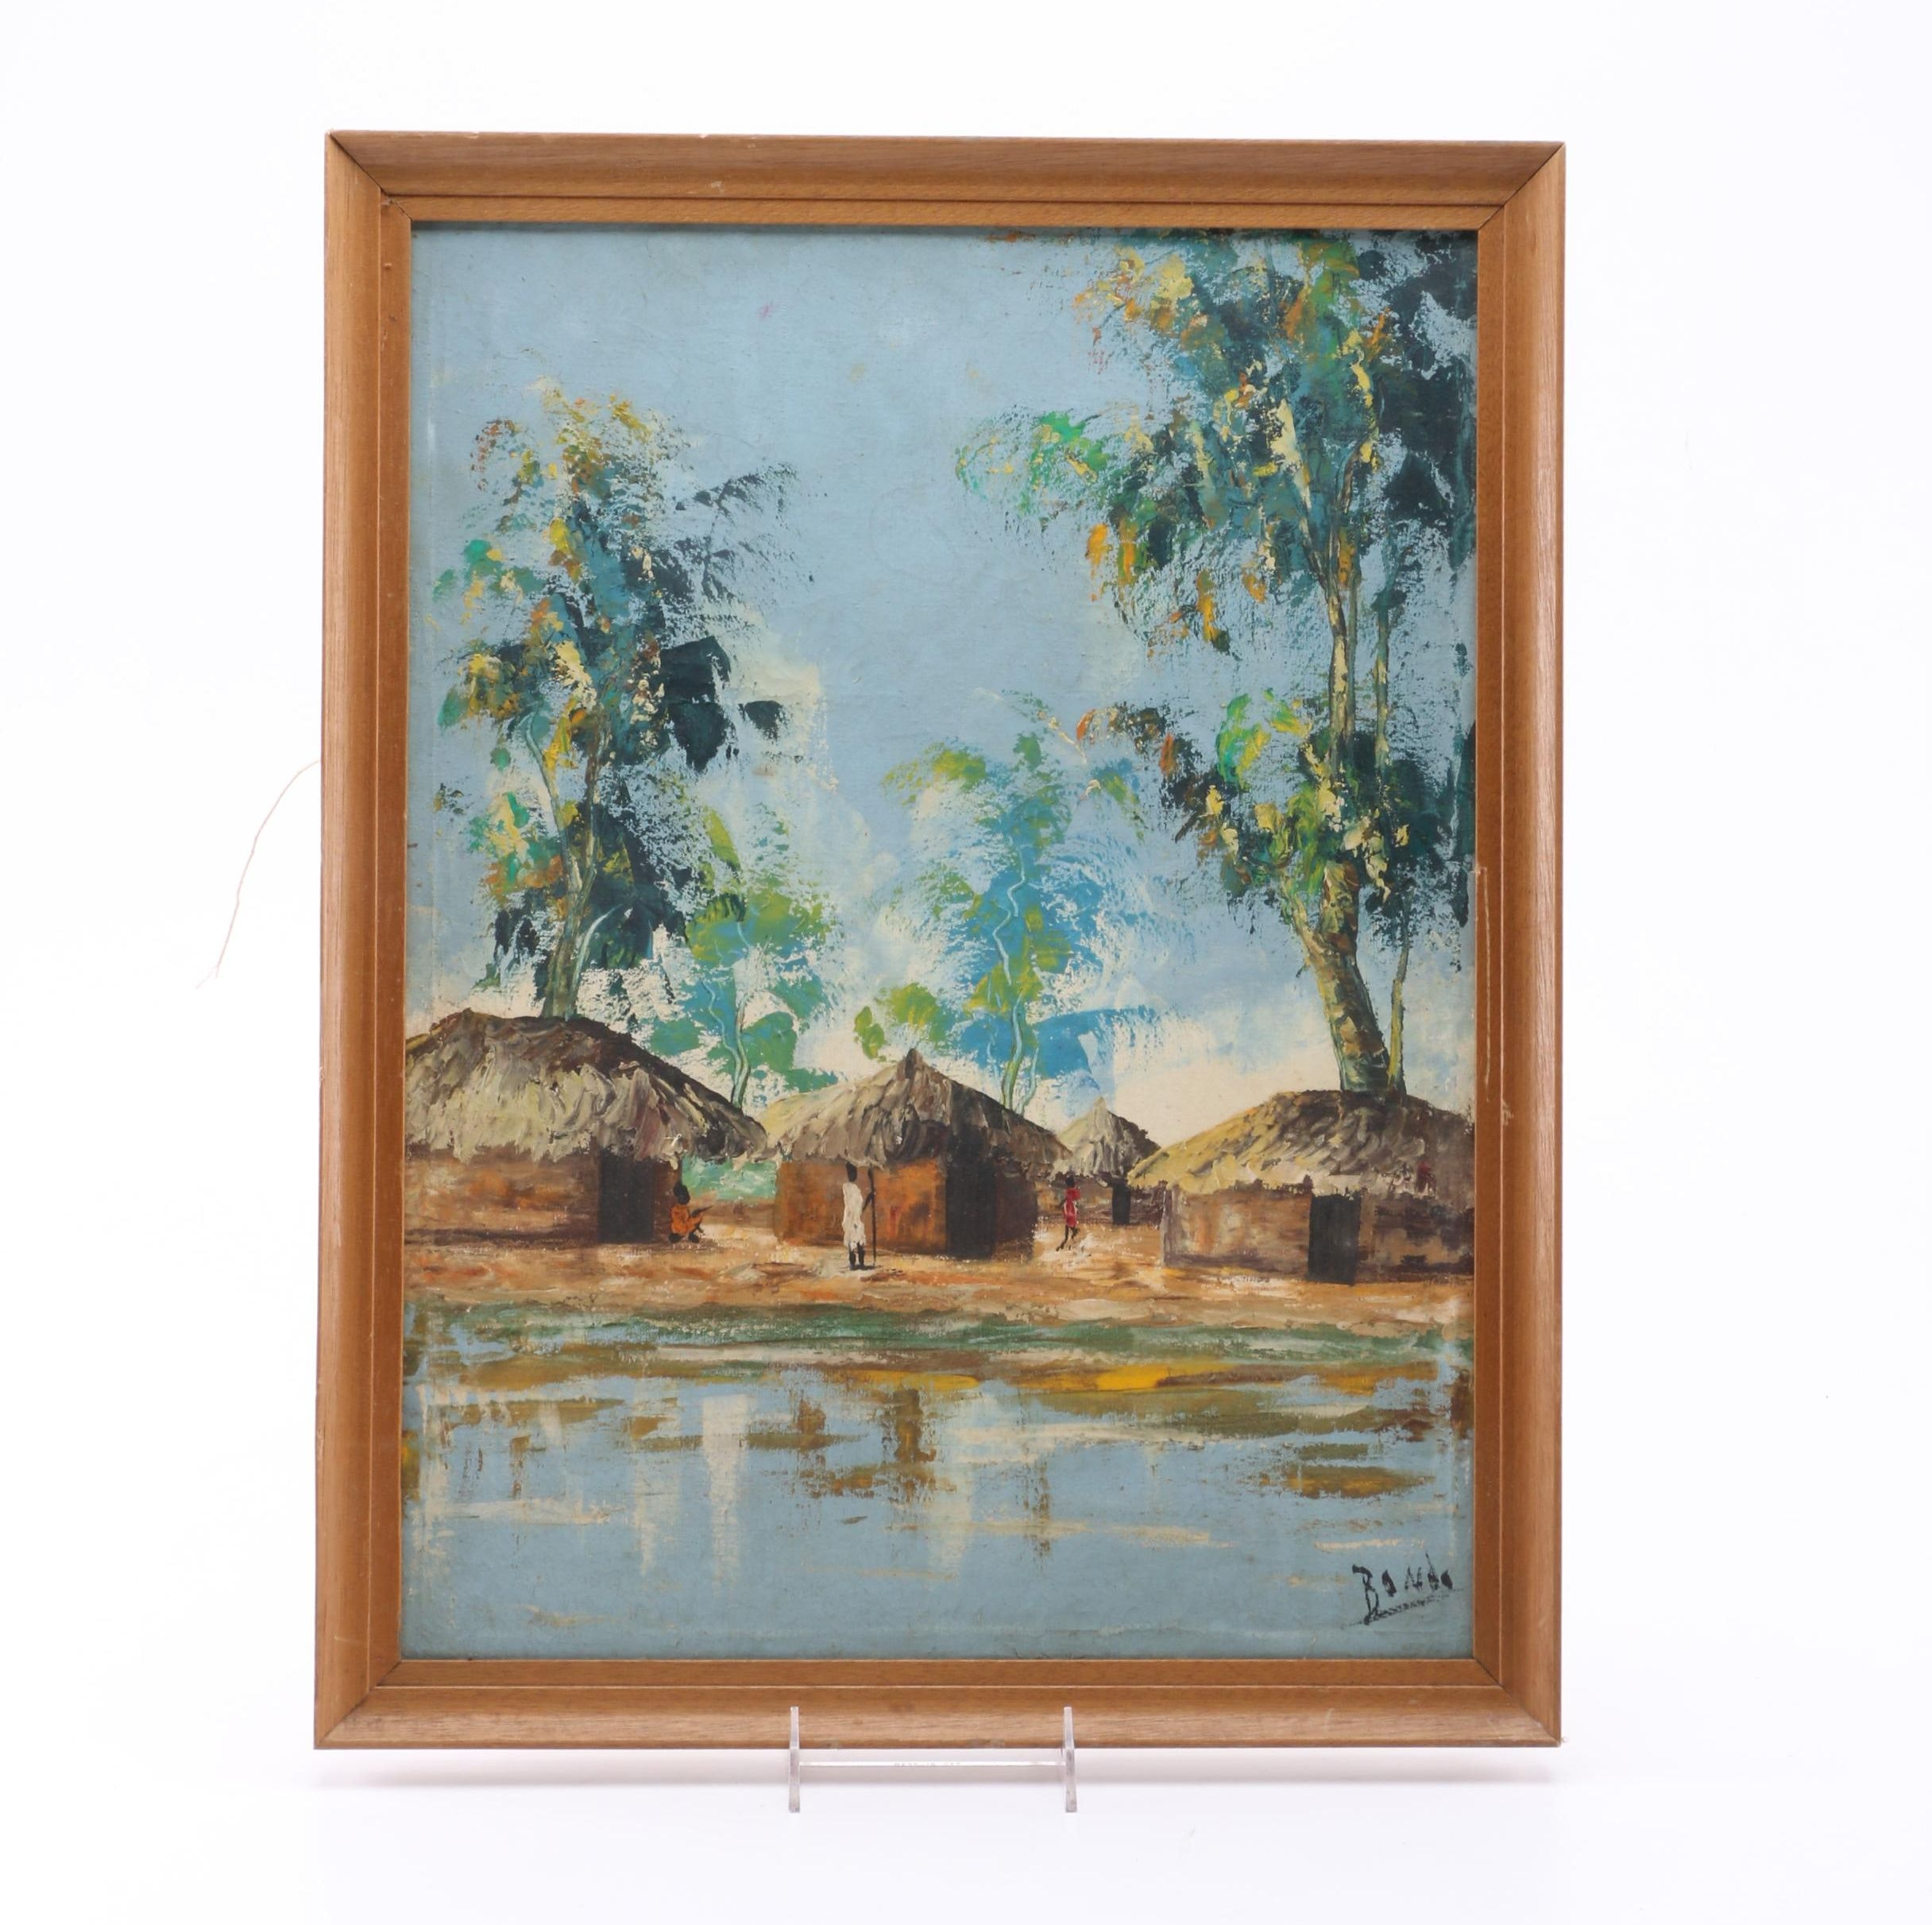 Bondo Oil Painting on Canvas of African Figural Landscape